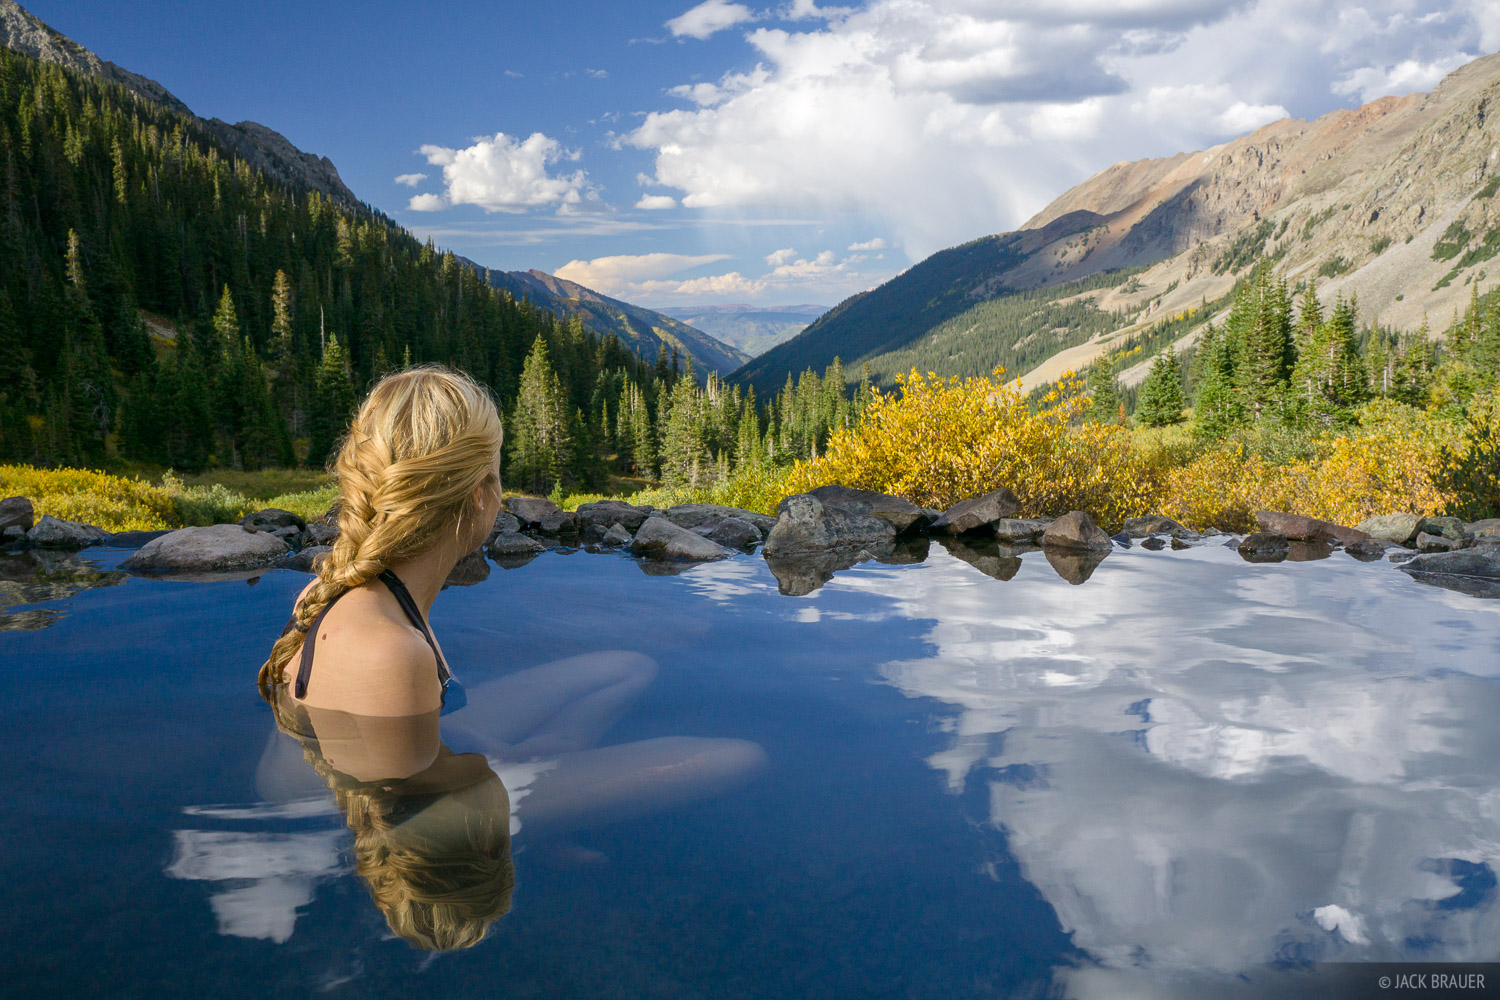 Colorado, Conundrum Hot Springs, Elk Mountains, Aspen, Maroon Bells-Snowmass Wilderness, photo